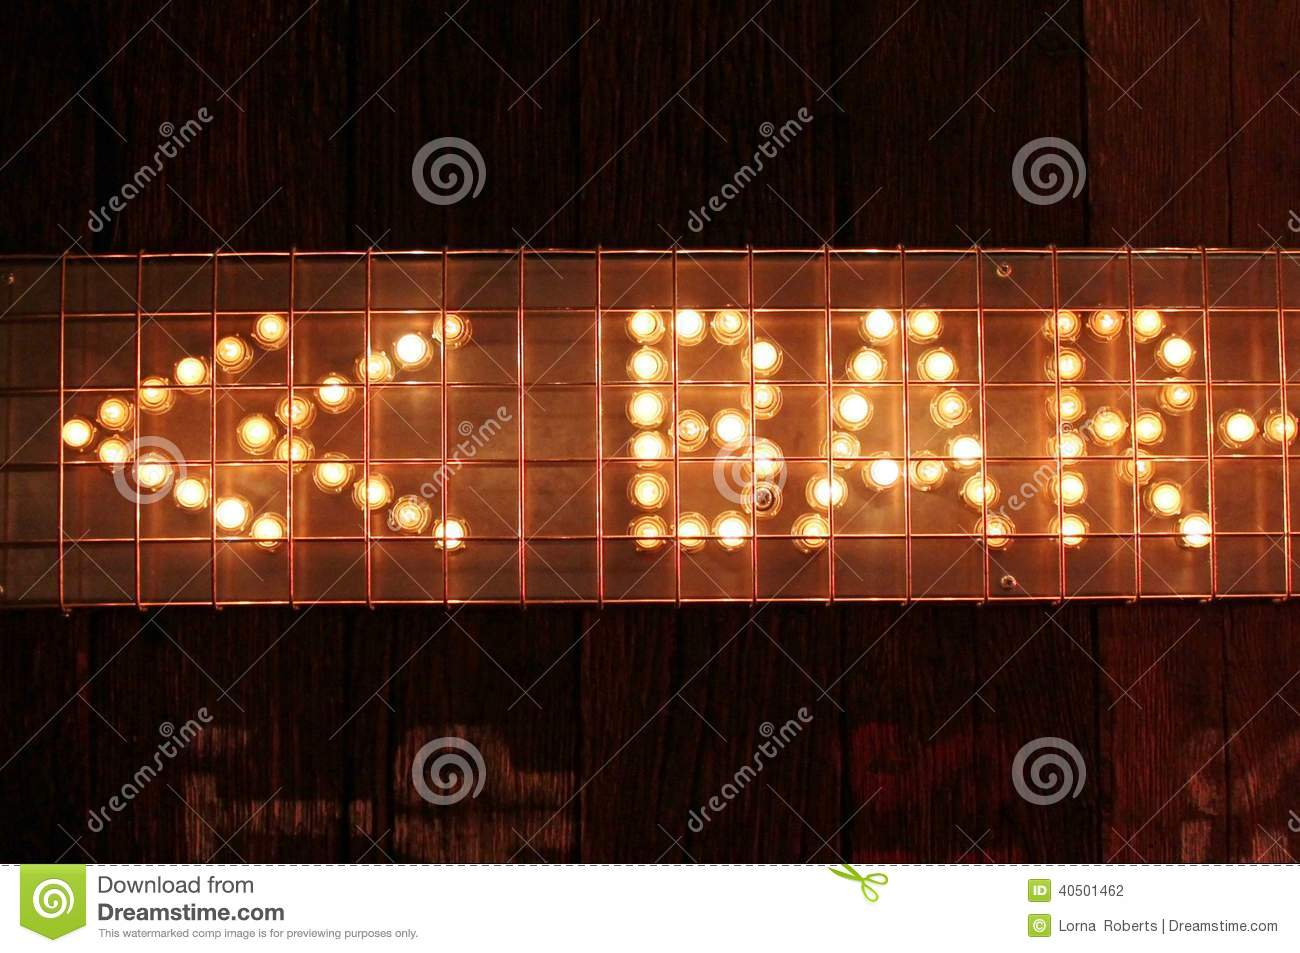 Bar sign lights neon stock photo image of angle close 40501462 bar sign lights neon aloadofball Image collections